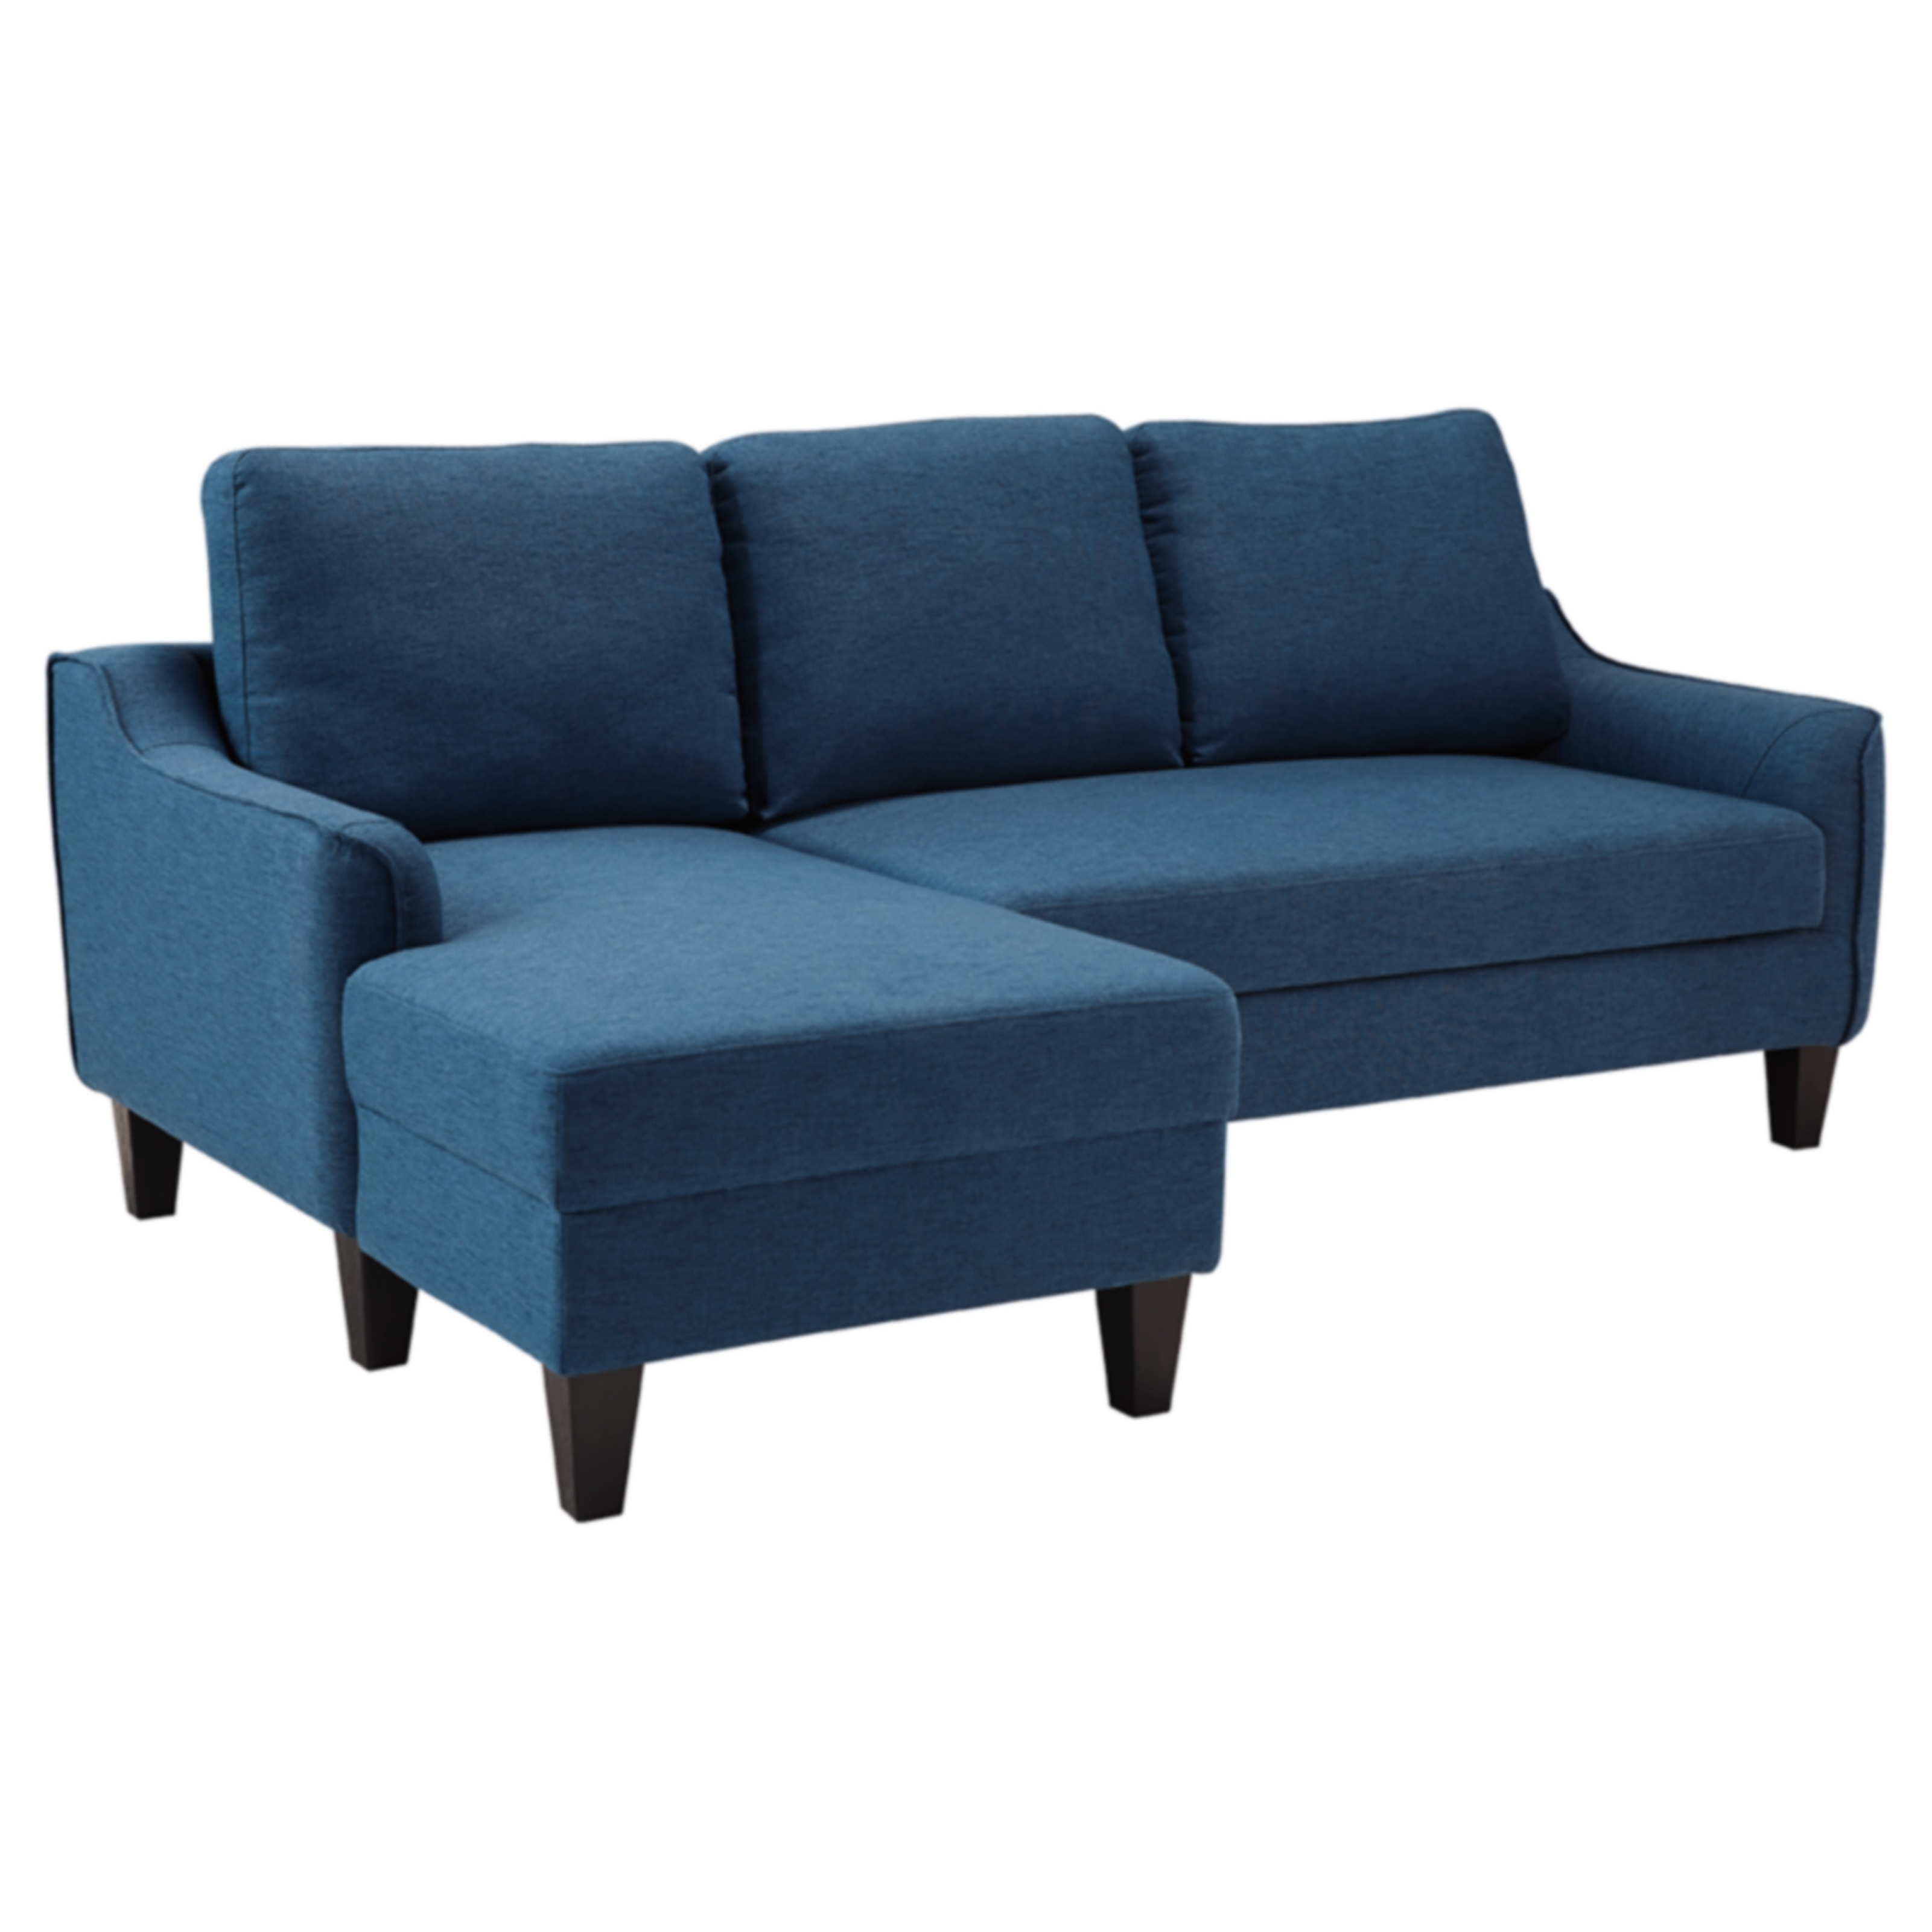 Sofa Bed Couch Buy Sleeper Sofa Online At Overstock Our Best Living Room